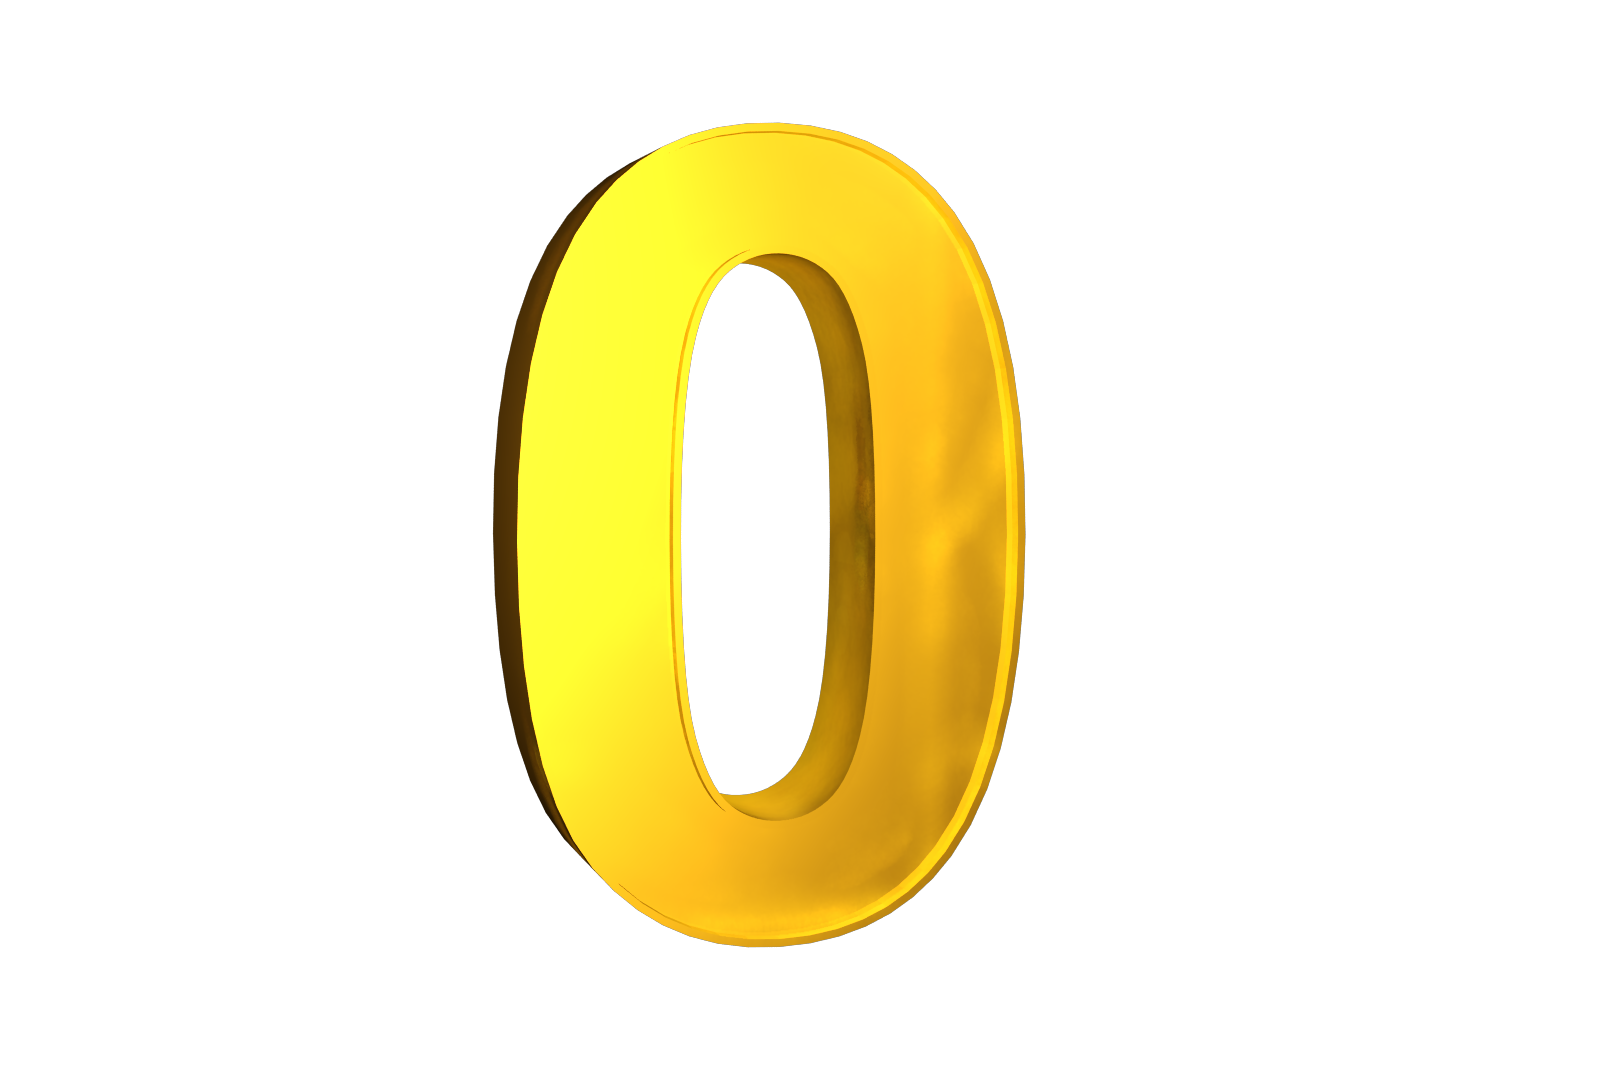 Number 0 png 8 » PNG Image.